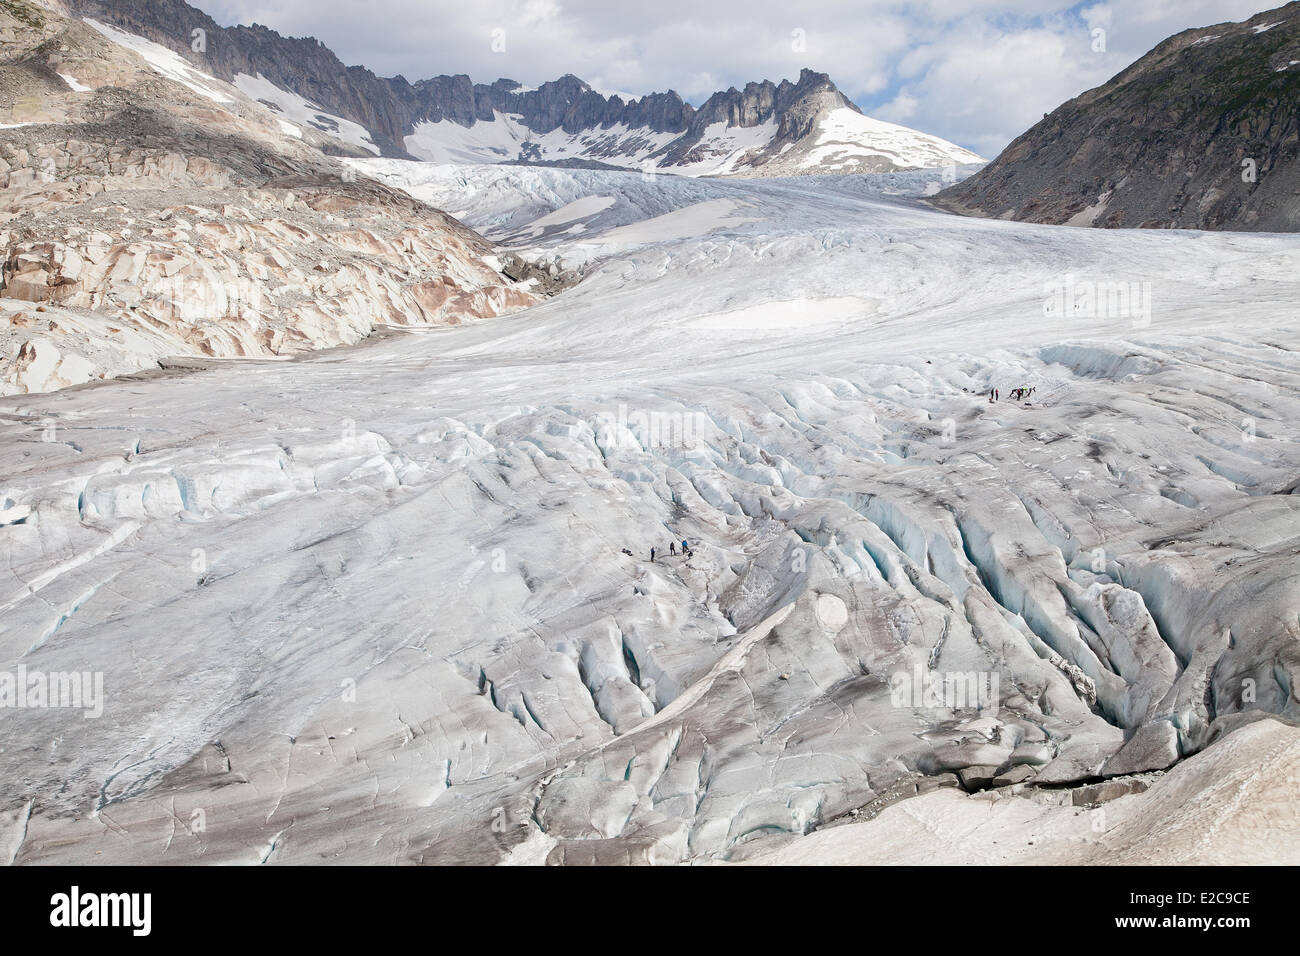 Switzerland, Canton of Valais, the Rhone Glacier in the Swiss Alps - Stock Image